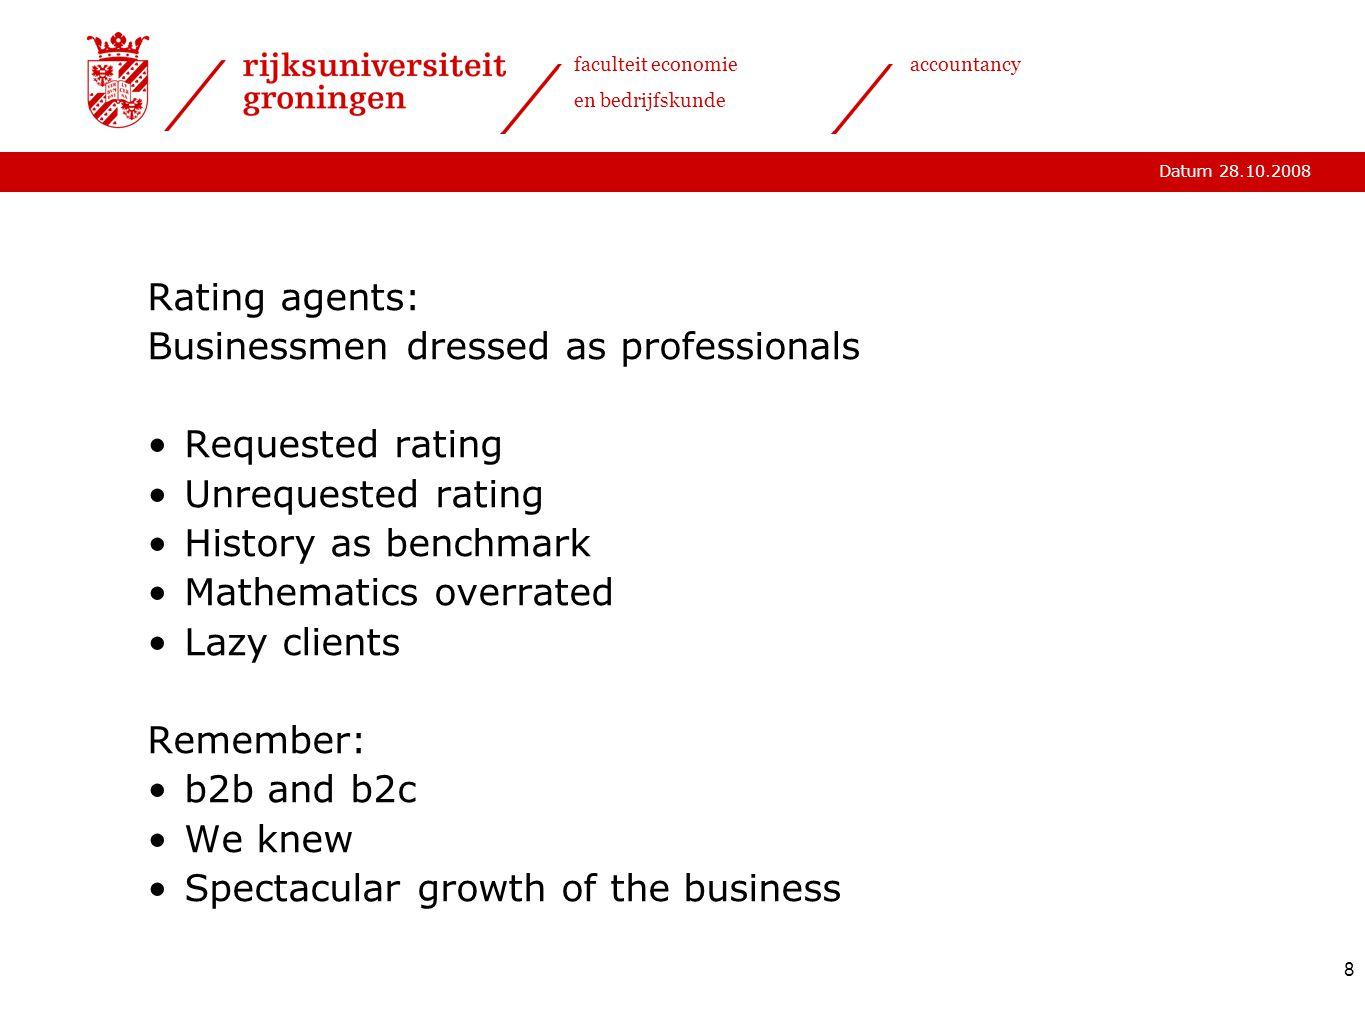 Datum 28.10.2008 faculteit economie en bedrijfskunde accountancy 8 Rating agents: Businessmen dressed as professionals Requested rating Unrequested rating History as benchmark Mathematics overrated Lazy clients Remember: b2b and b2c We knew Spectacular growth of the business